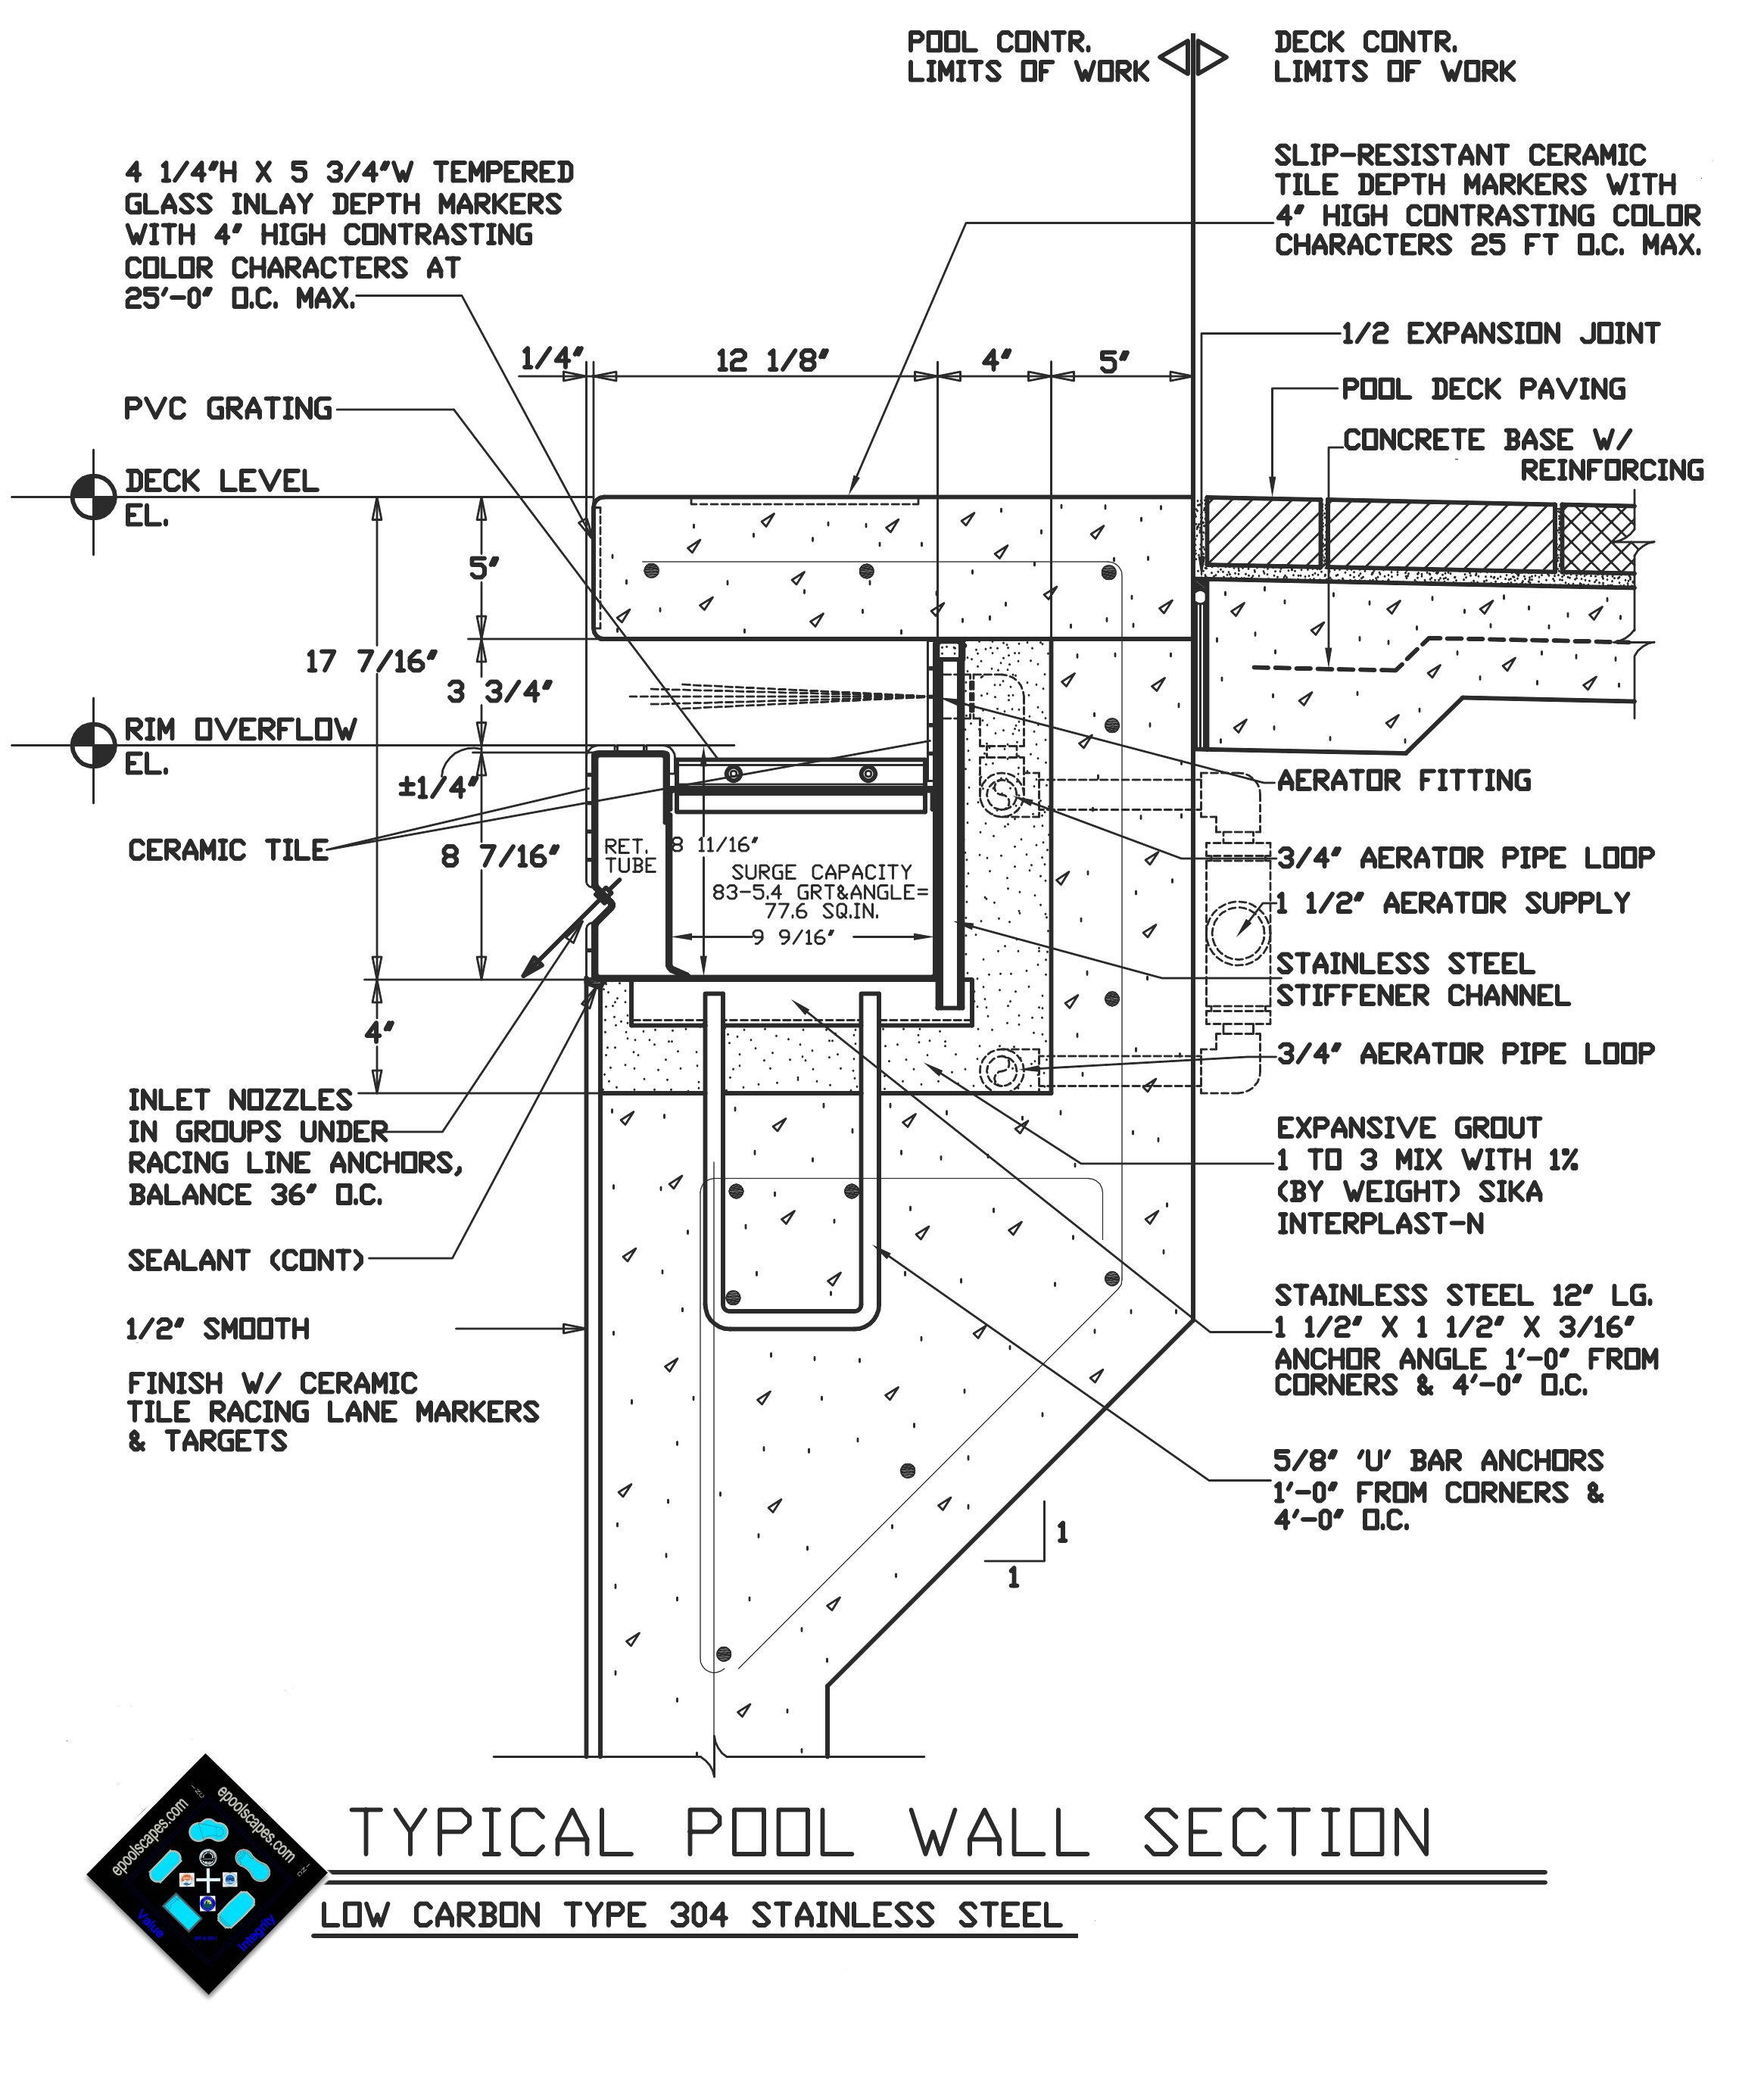 Swimming pool autocad drawing details pinteres for Pool design standards